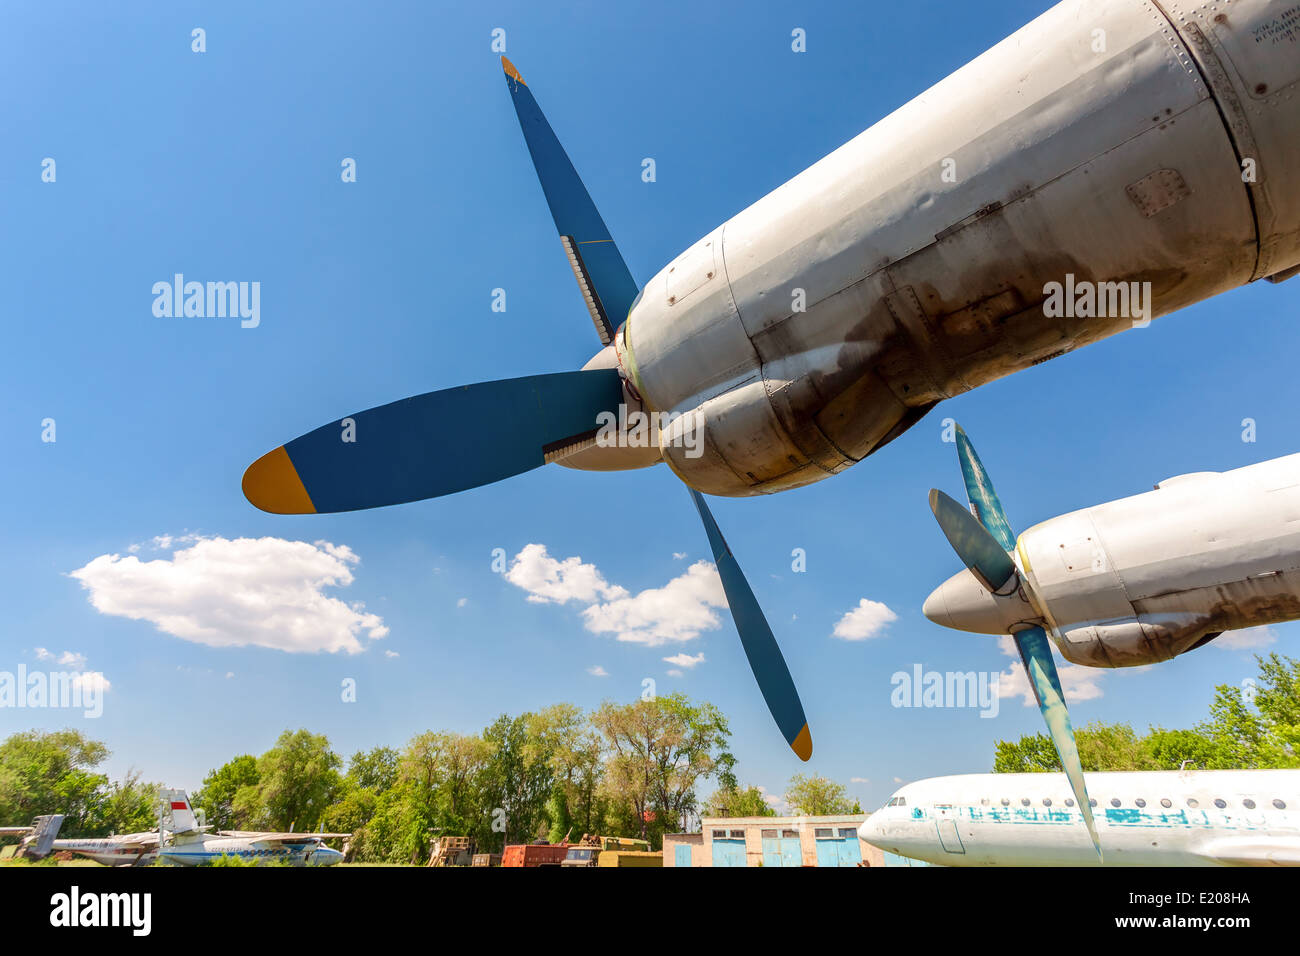 Turbines of turboprop aircraft An-12 at an abandoned aerodrome - Stock Image